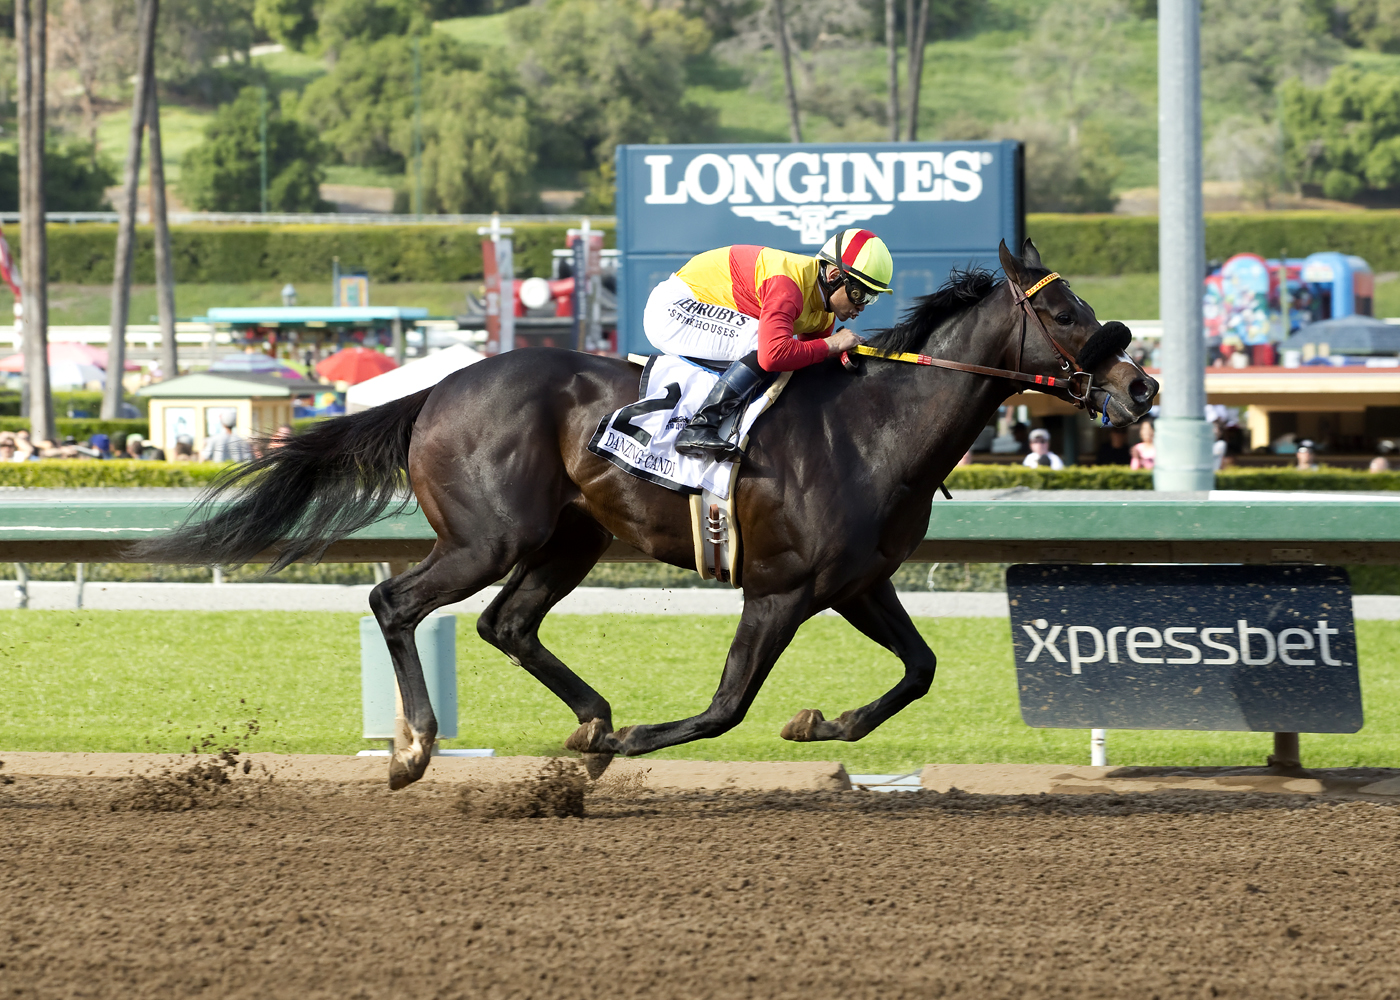 In this photo provided by Benoit Photo, Danzing Candy and jockey Mike Smith win the Grade II, $400,000 San Felipe Stakes horse race Saturday, March 12, 2016, at Santa Anita Park, Arcadia, Calif. (Benoit Photo via AP) MANDATORY CREDIT